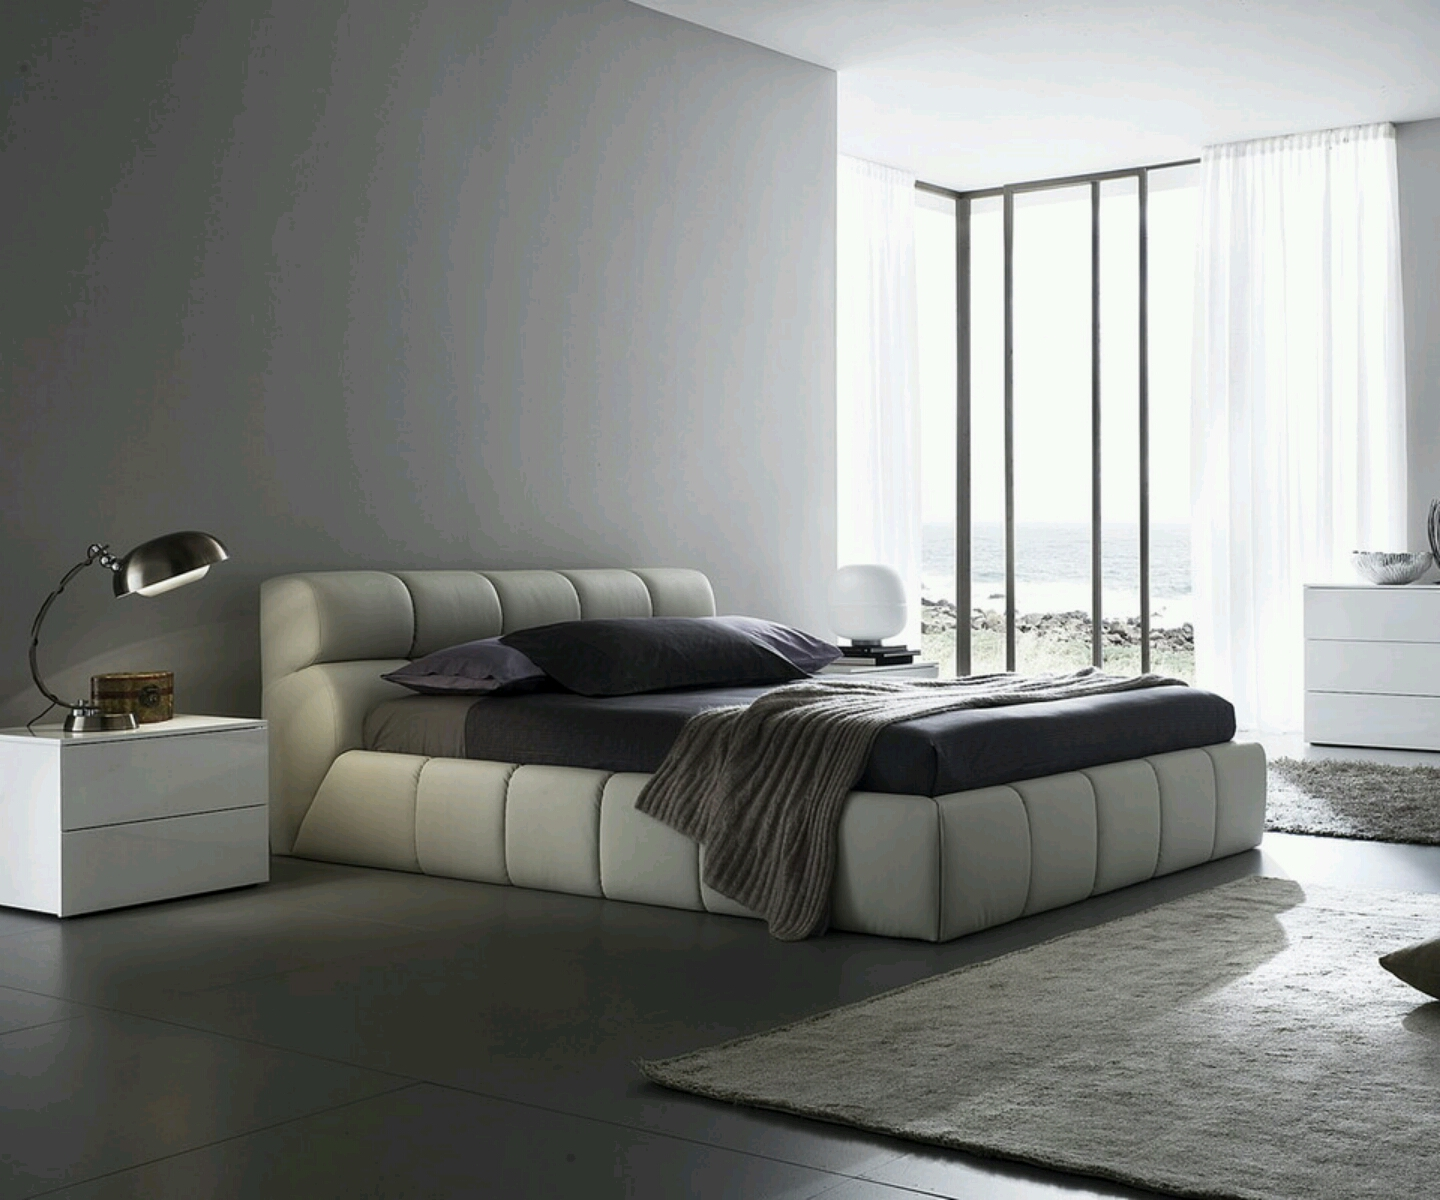 Modern furniture modern bed designs beautiful bedrooms Modern bedroom designs 2012